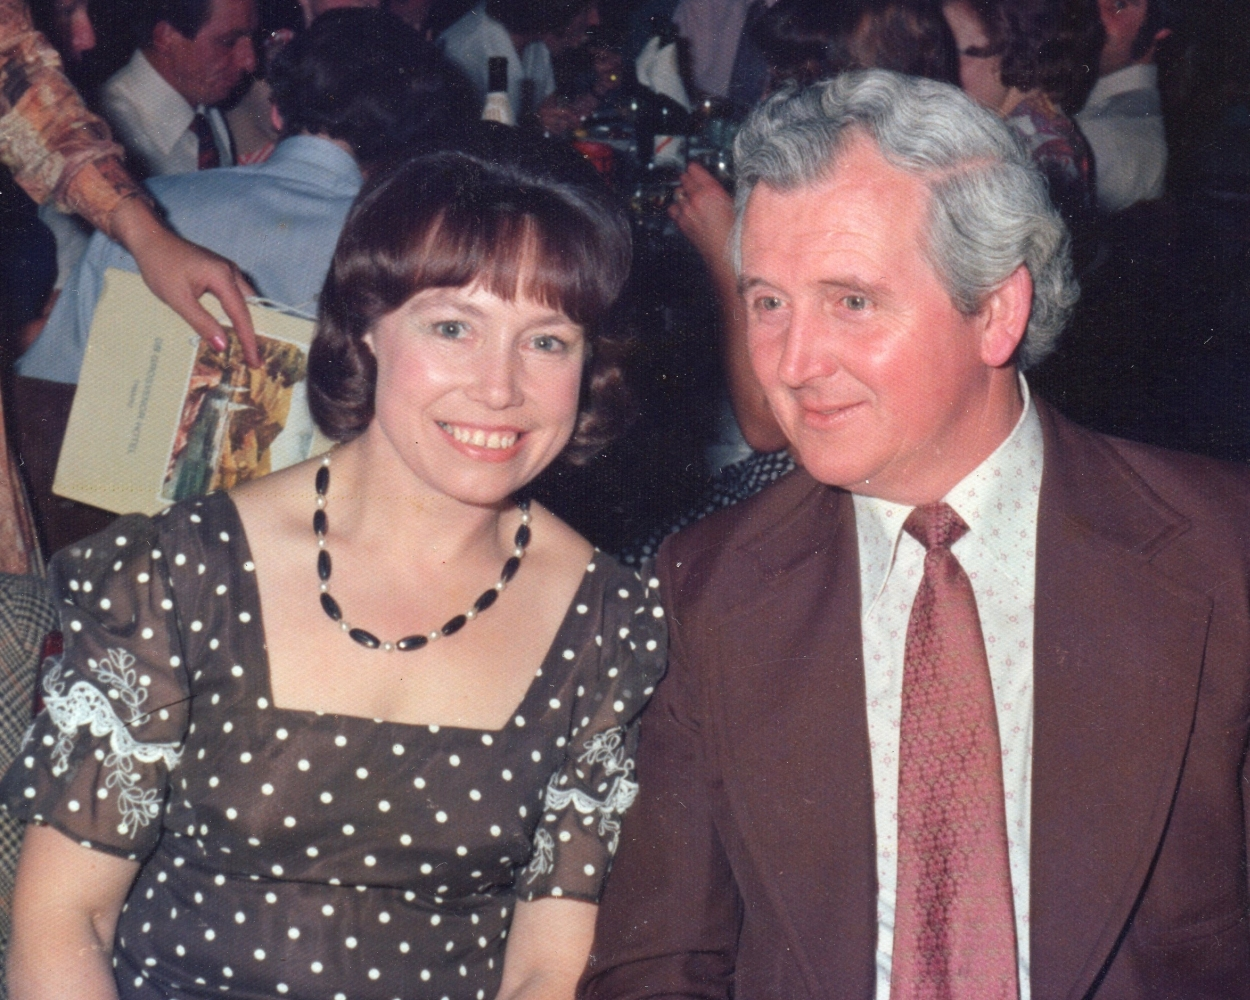 Henia and George  at a social function. Henia's dress is brown-dotted, square-necked and has intricate lace detail on the short sleeves